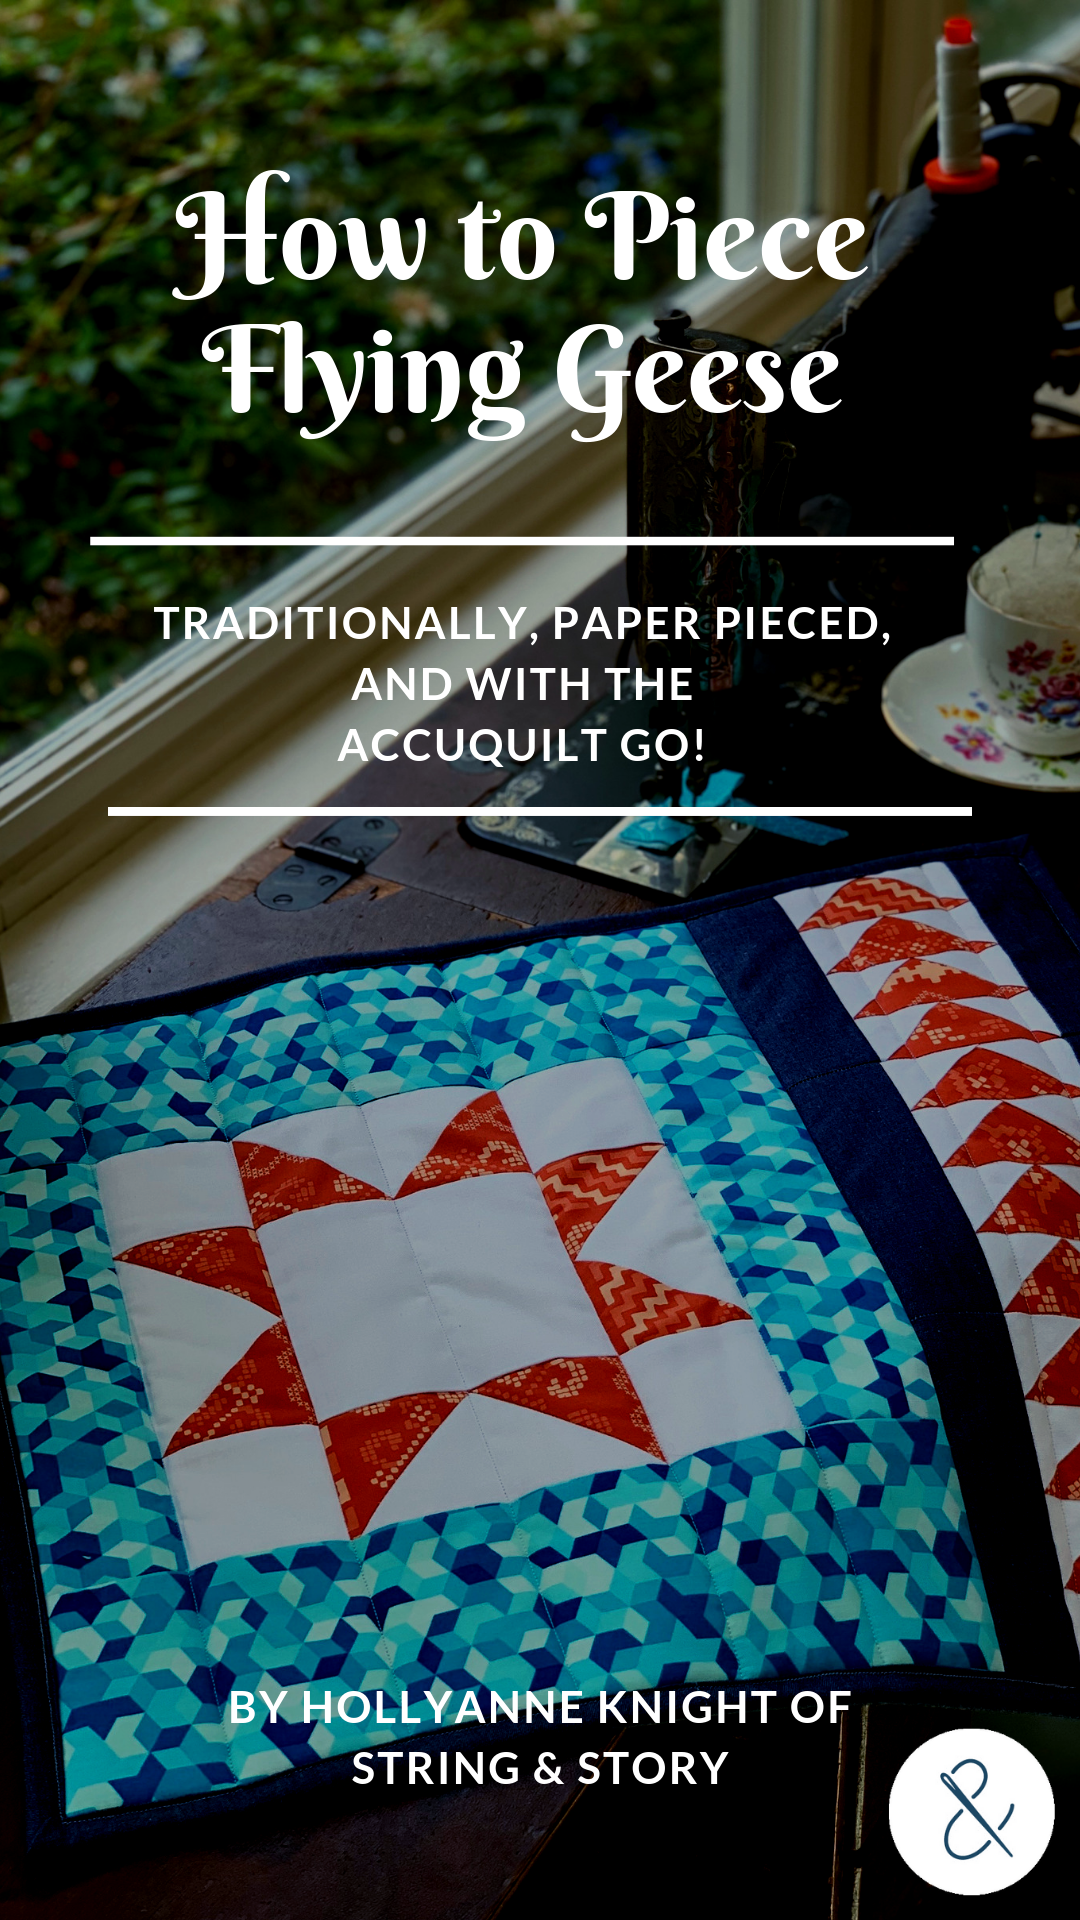 Flying geese units add great movement to quilt tops and are perfect for piecing star blocks. Don't let working with triangles trip you up, though-- they can be quite easy and fun to make! Click to learn my three favorite ways to make flying geese!